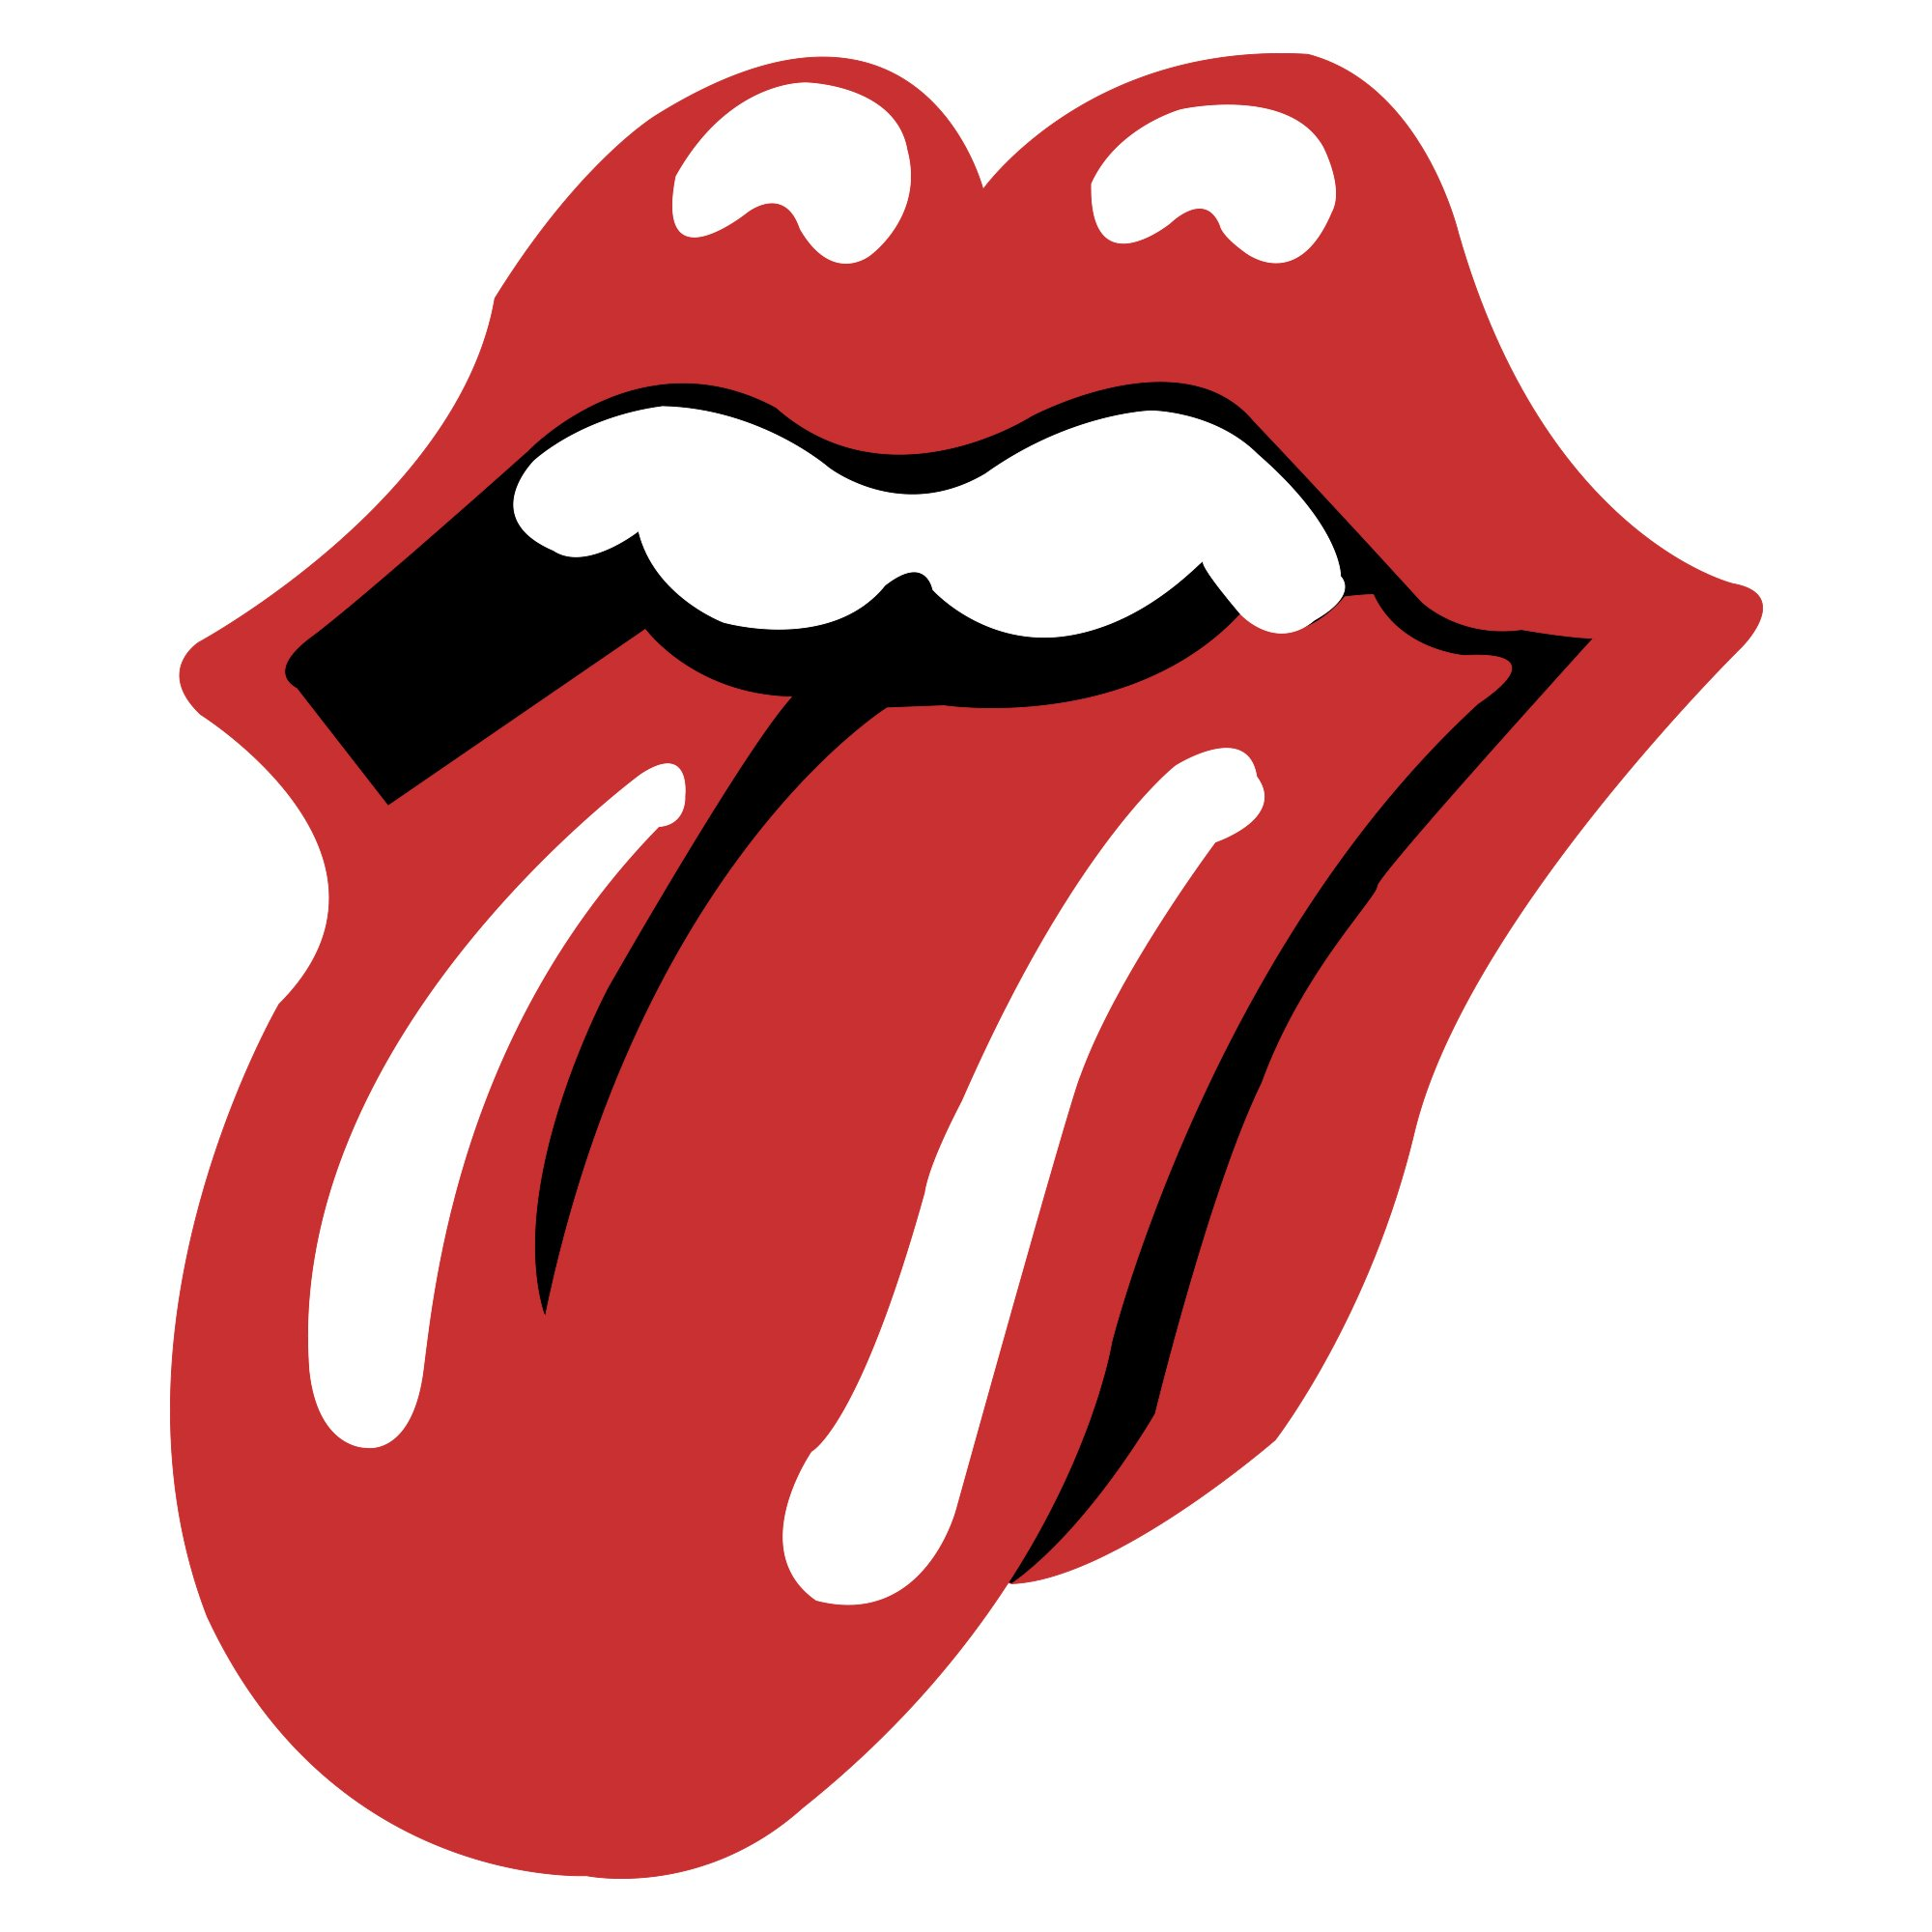 rolling stones logo rolling stones symbol meaning